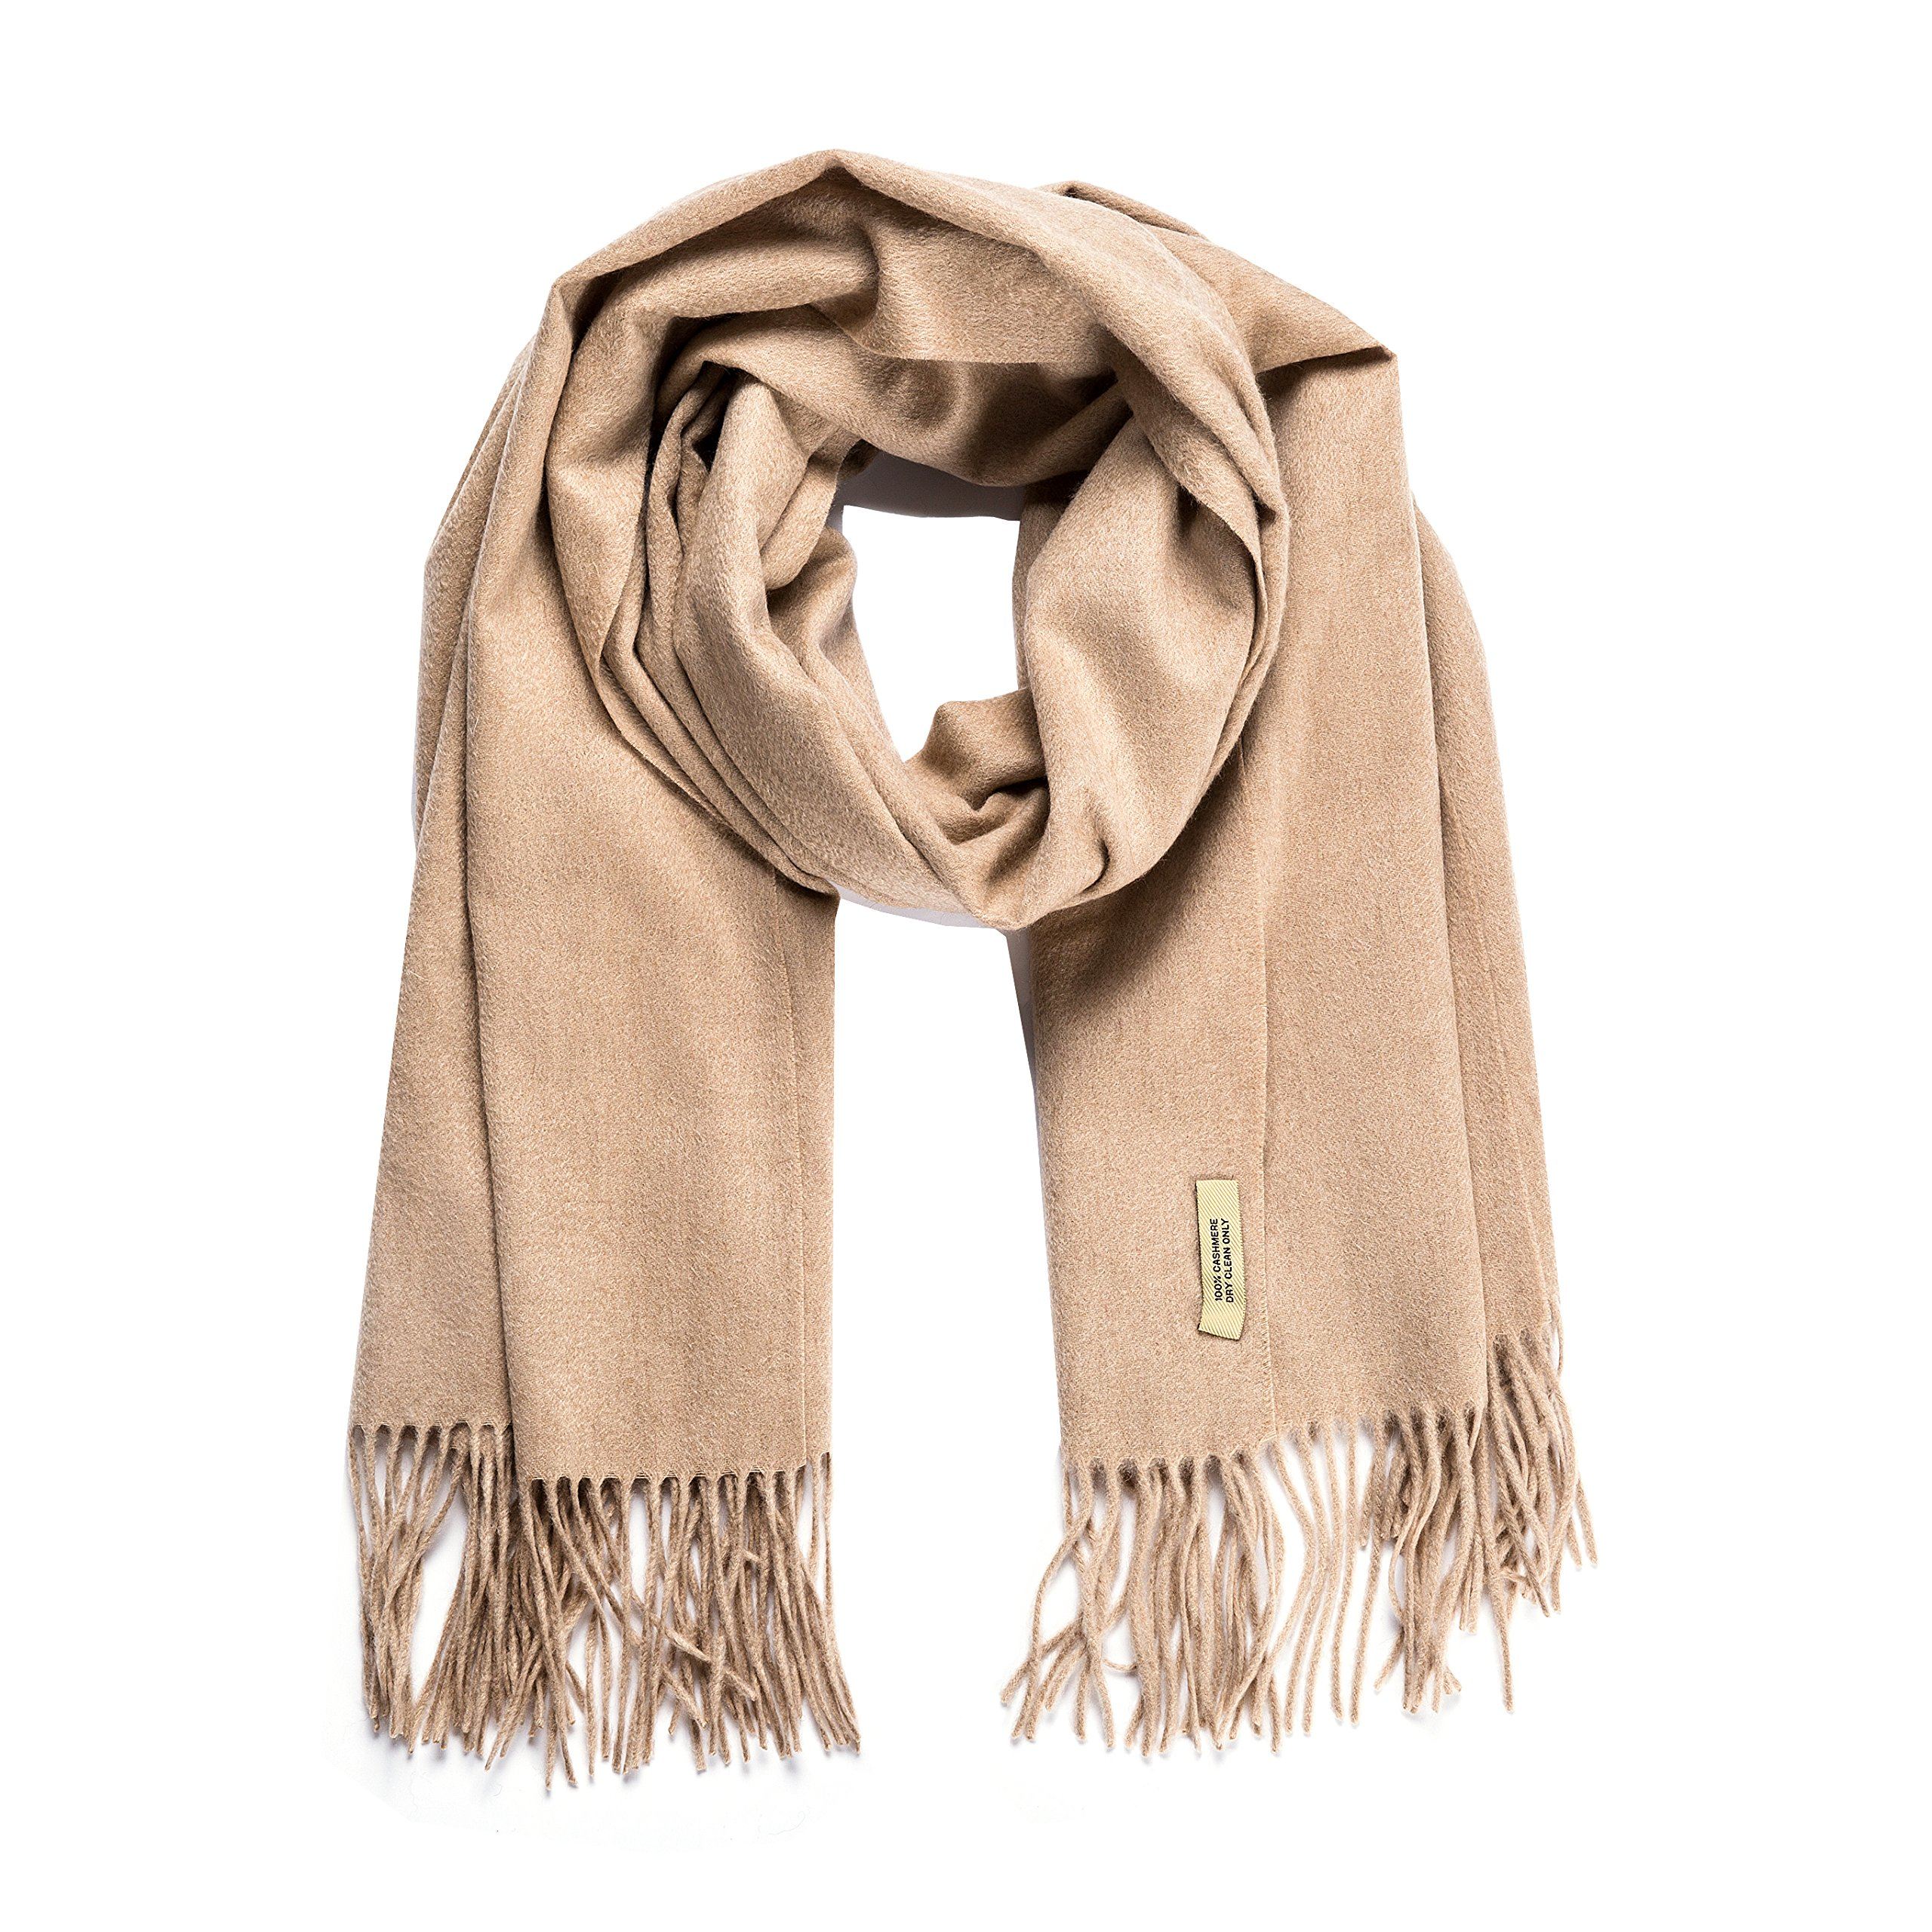 KISSWIN 100% Authentic Cashmere Super Soft and Warm Pashmina Wrap Shawl Extra Large Scarf with Gift Box - Camel